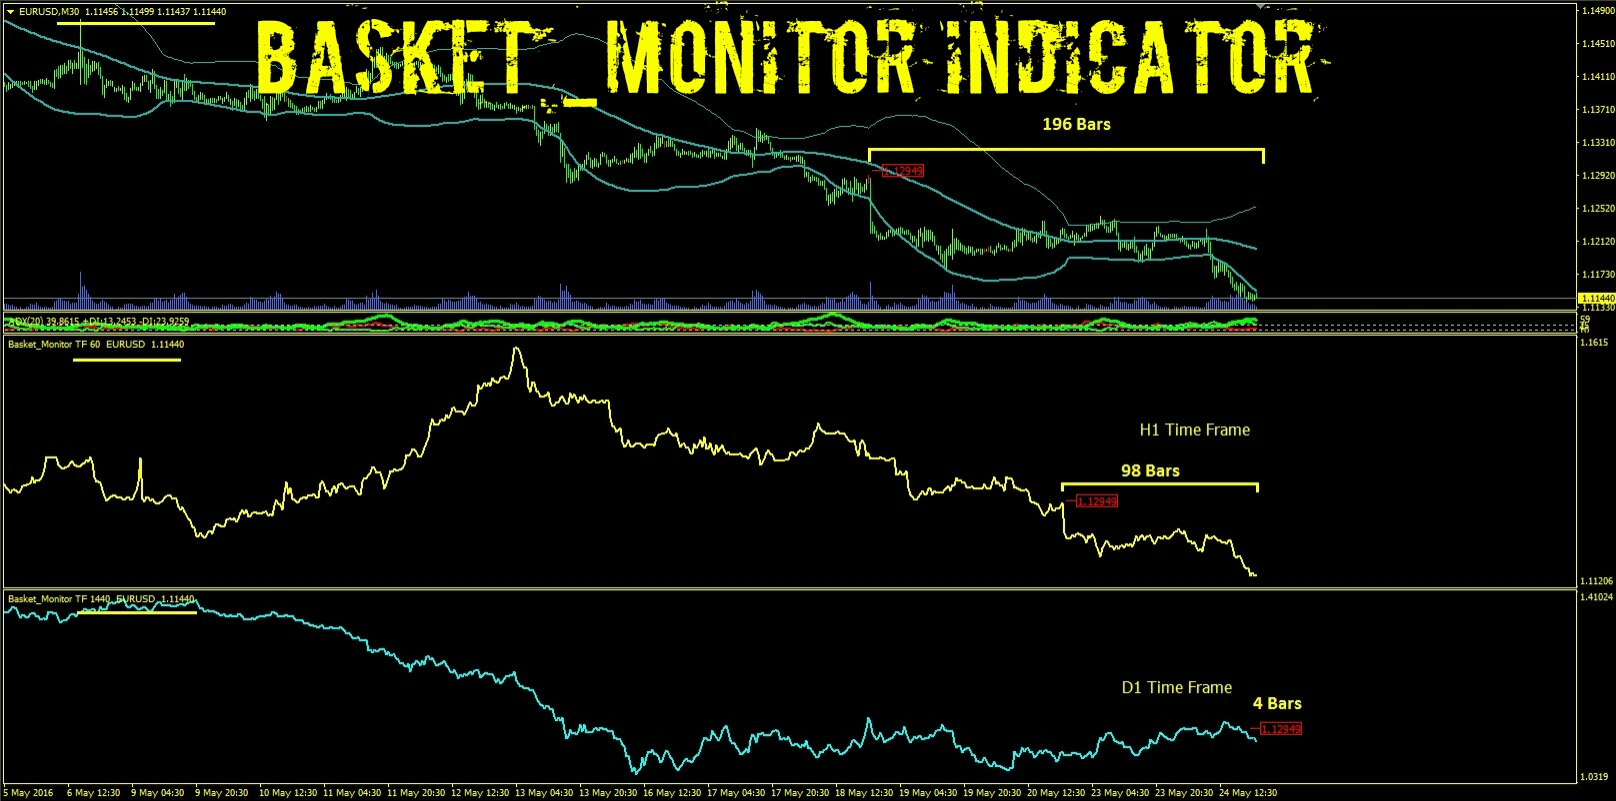 basket_monitor indicator